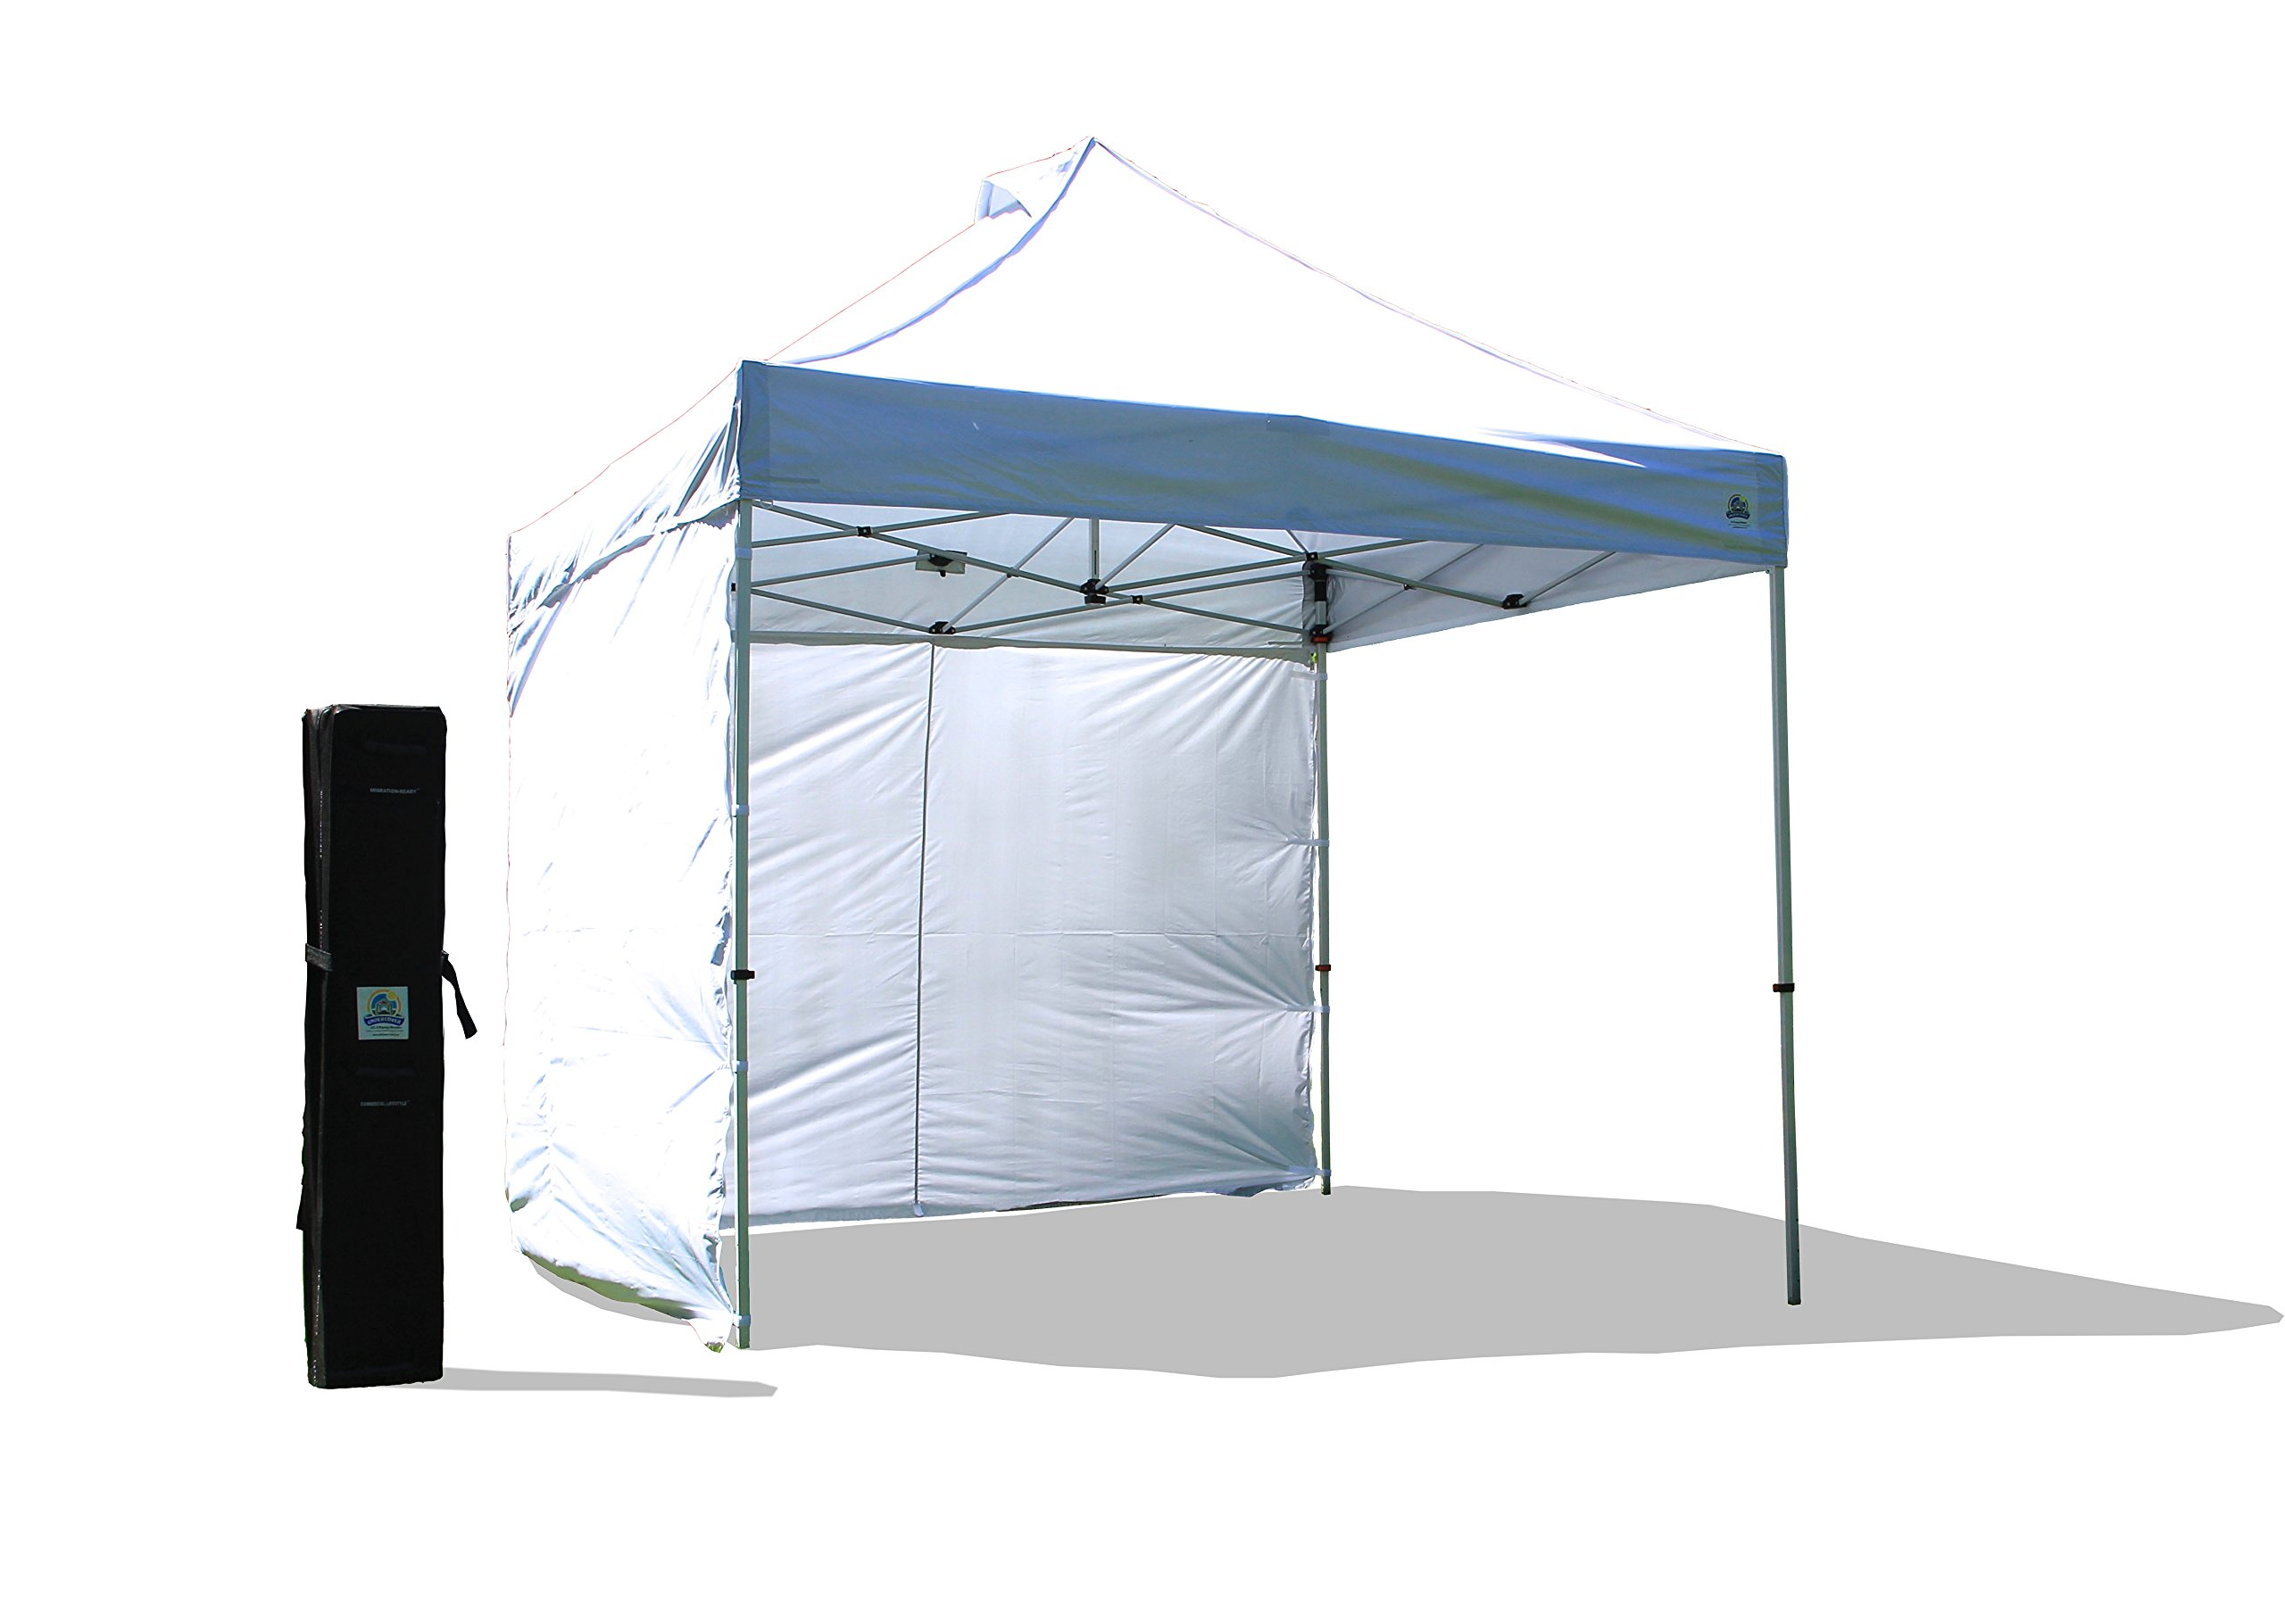 Undercover Canopy R-3 Commercial Vending Popup Shade